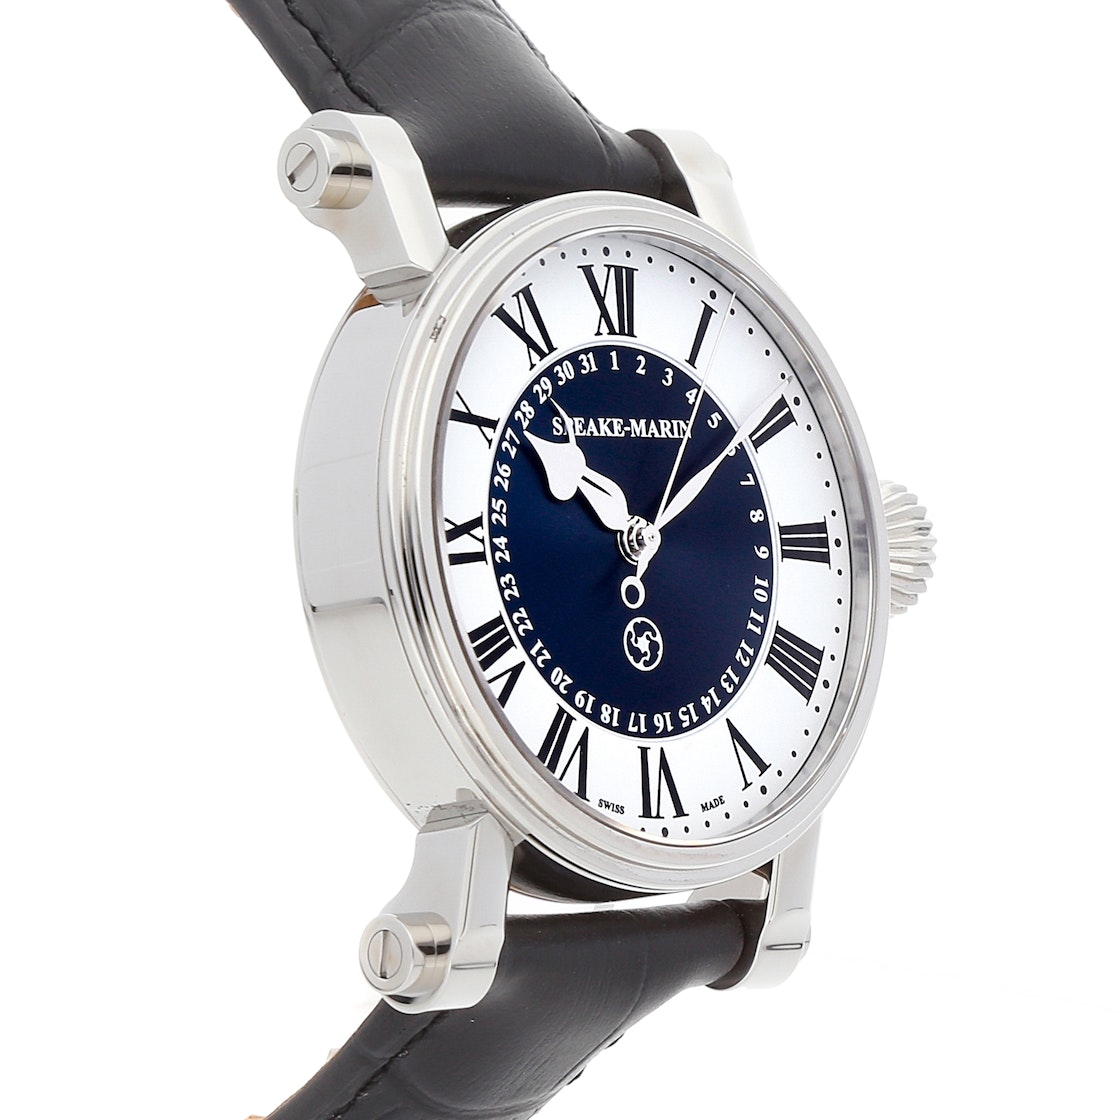 "Speake Marin Serpent Calendar Blue ""Piccadilly Case"" 10001-04"